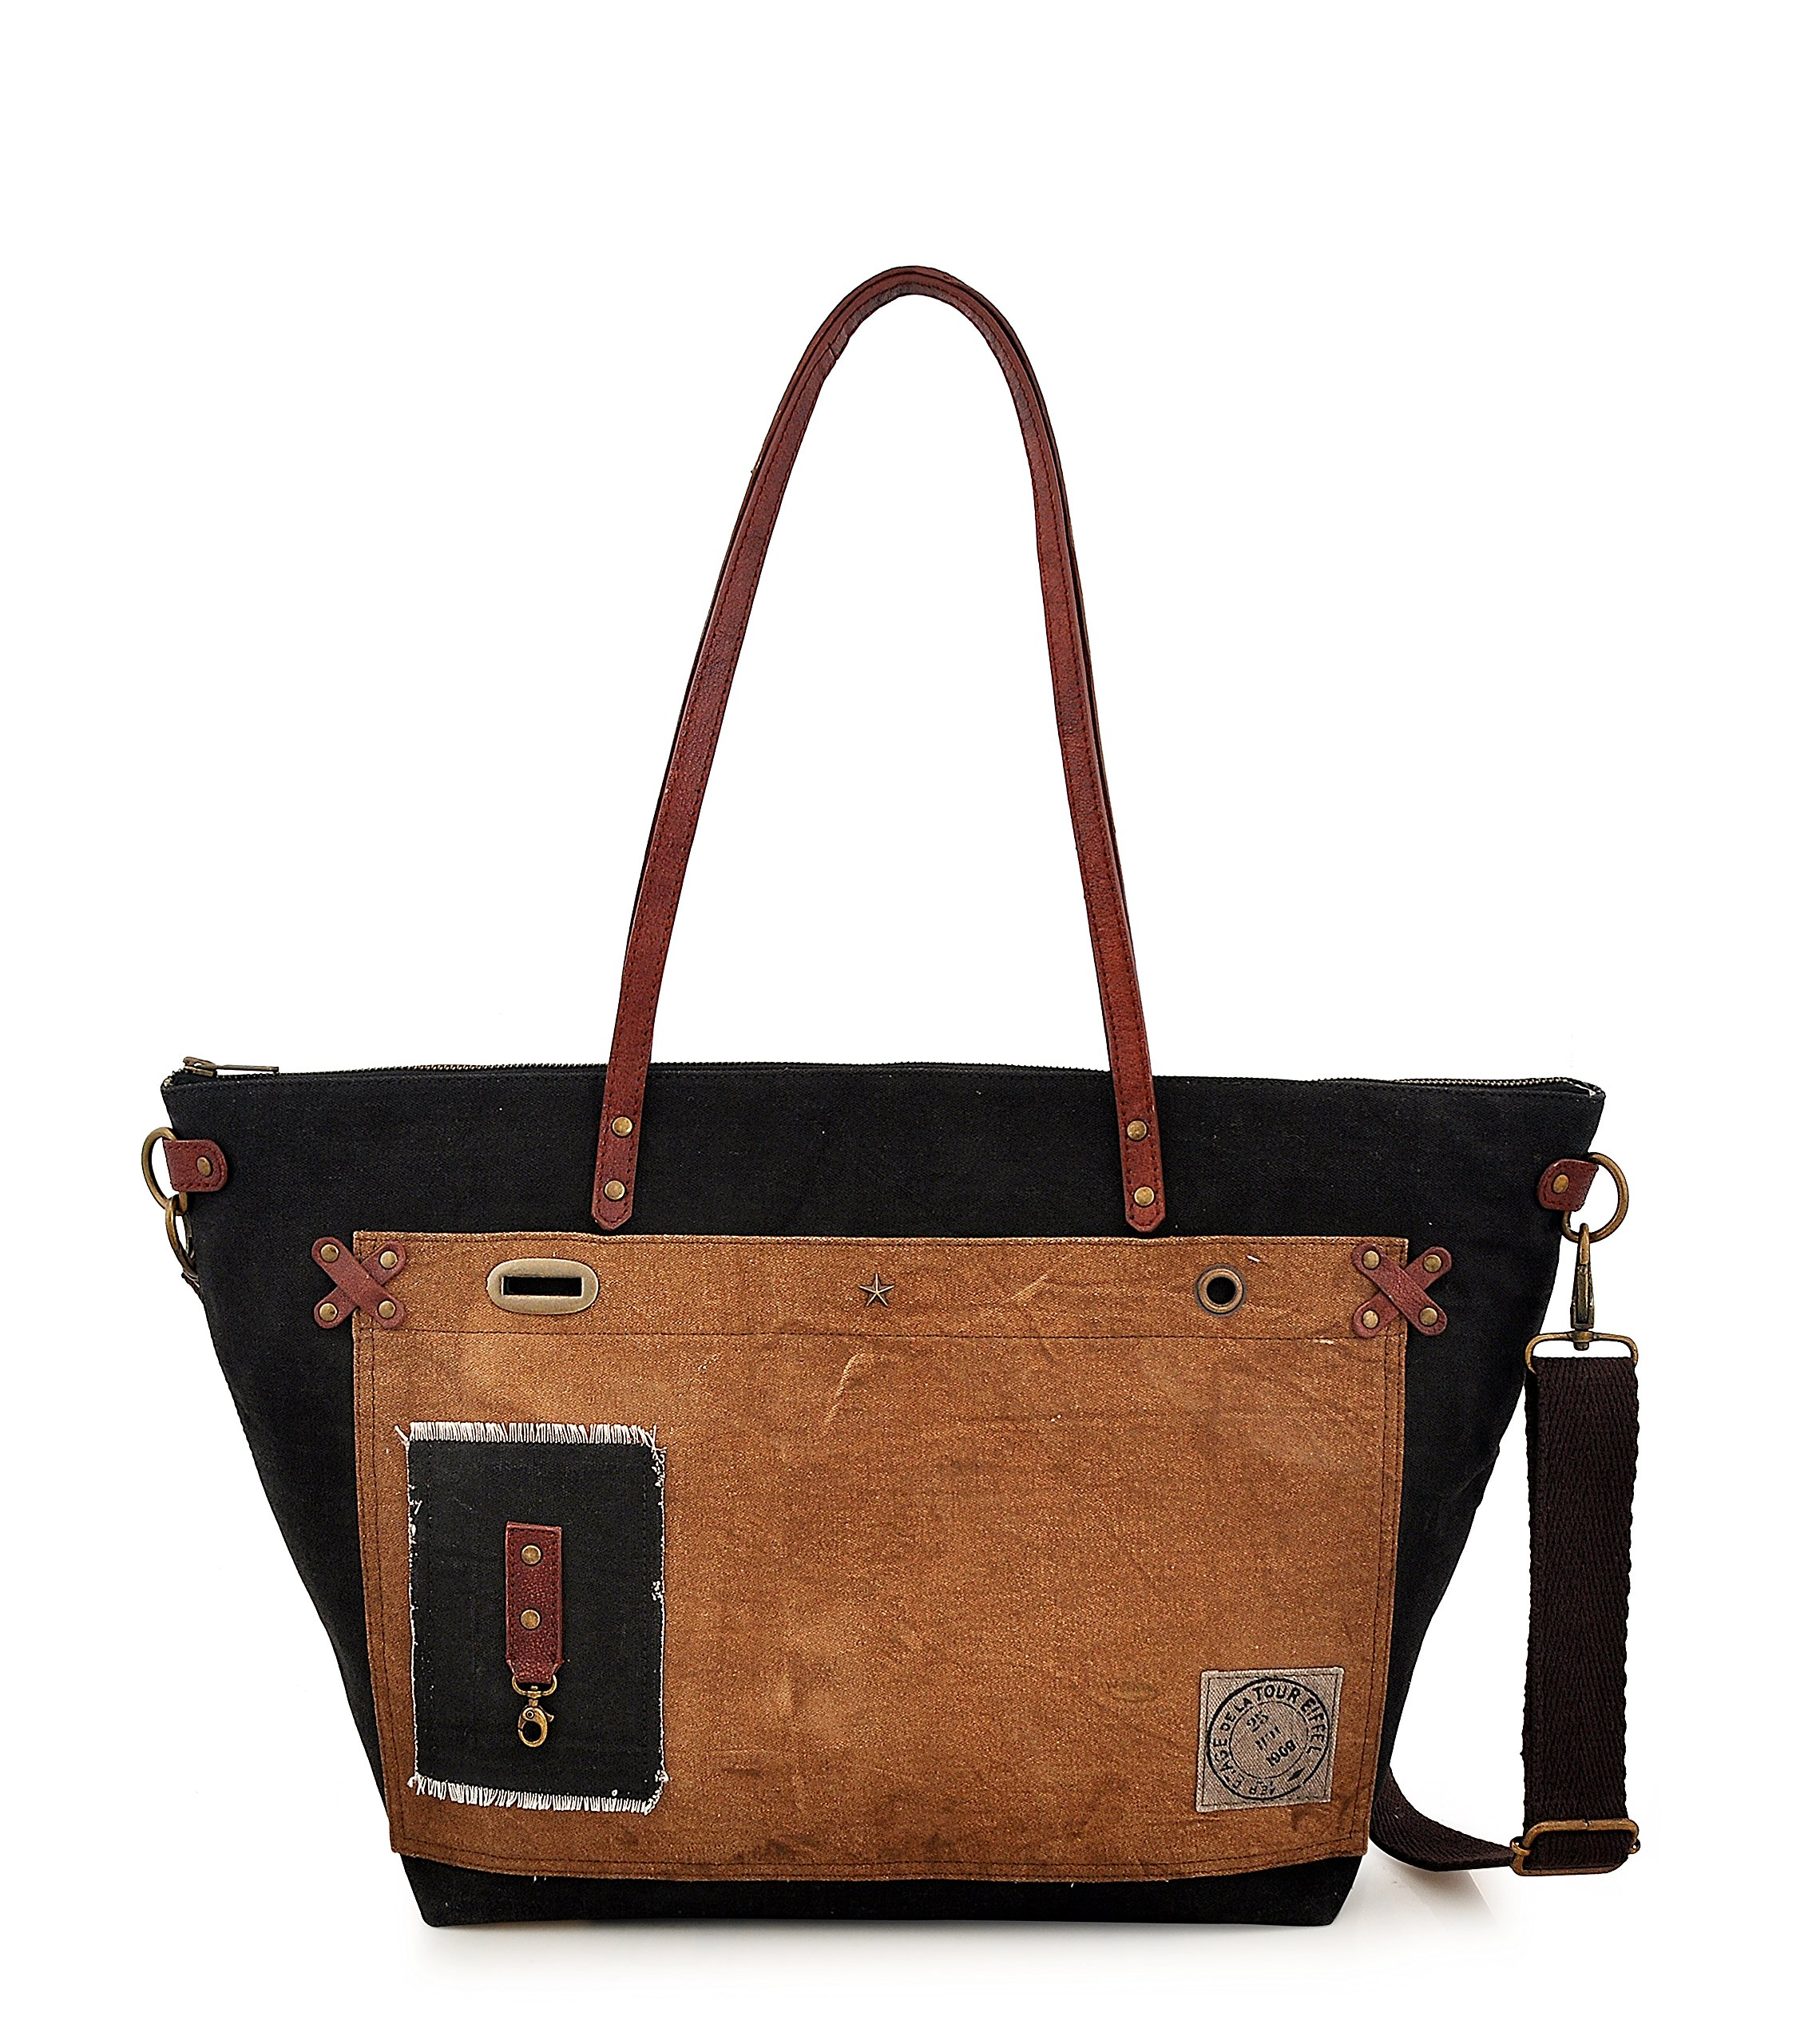 Tote bag for Women, Unique Design, Made of Canvas and Leather, Eco friendly bag, Handbags for Women by Daphne (Vitamin Sea) by Daphne's Headcovers (Image #2)